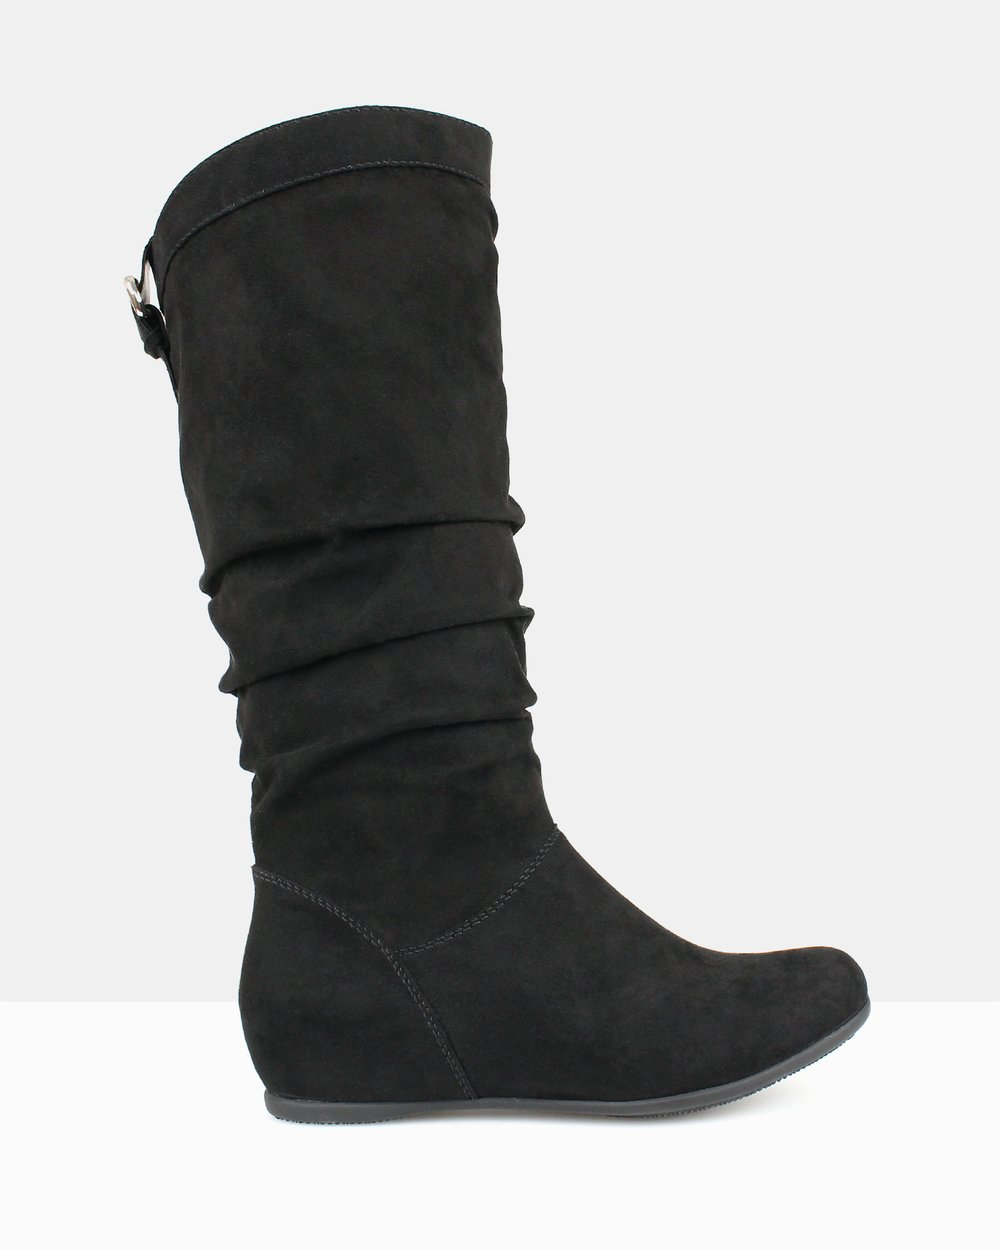 6932d7dec59 Oxley Ruched Knee-High Boots by Betts Online